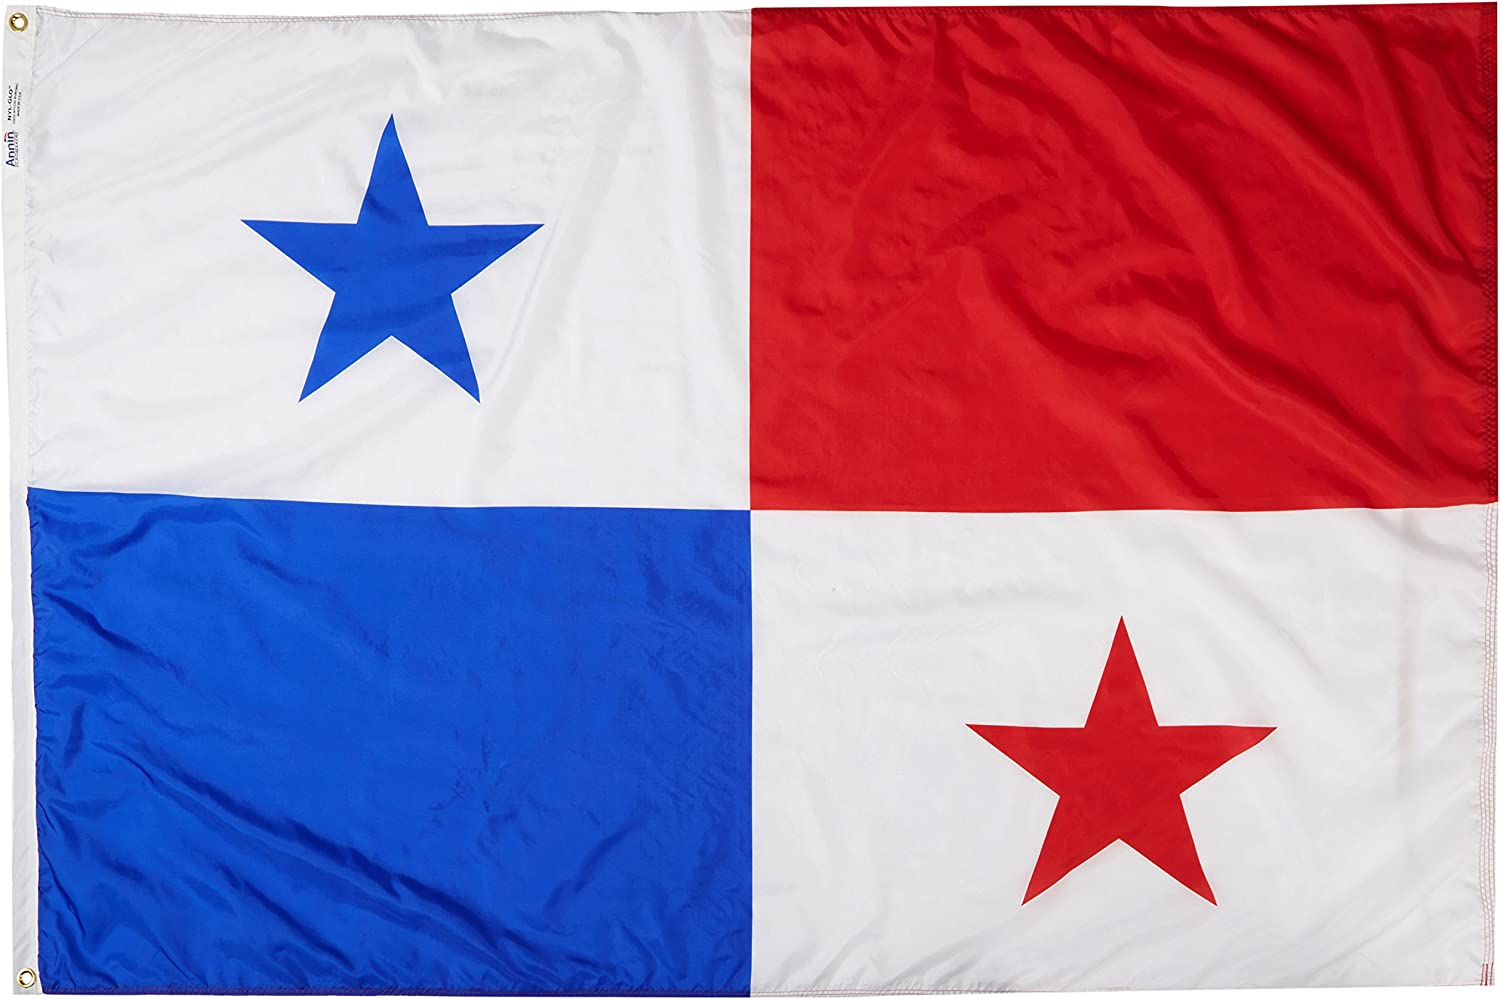 Annin Flagmakers Model 196544 Panama Flag Nylon SolarGuard NYL-Glo, 4x6 ft, 100% Made in USA to Official United Nations Design Specifications